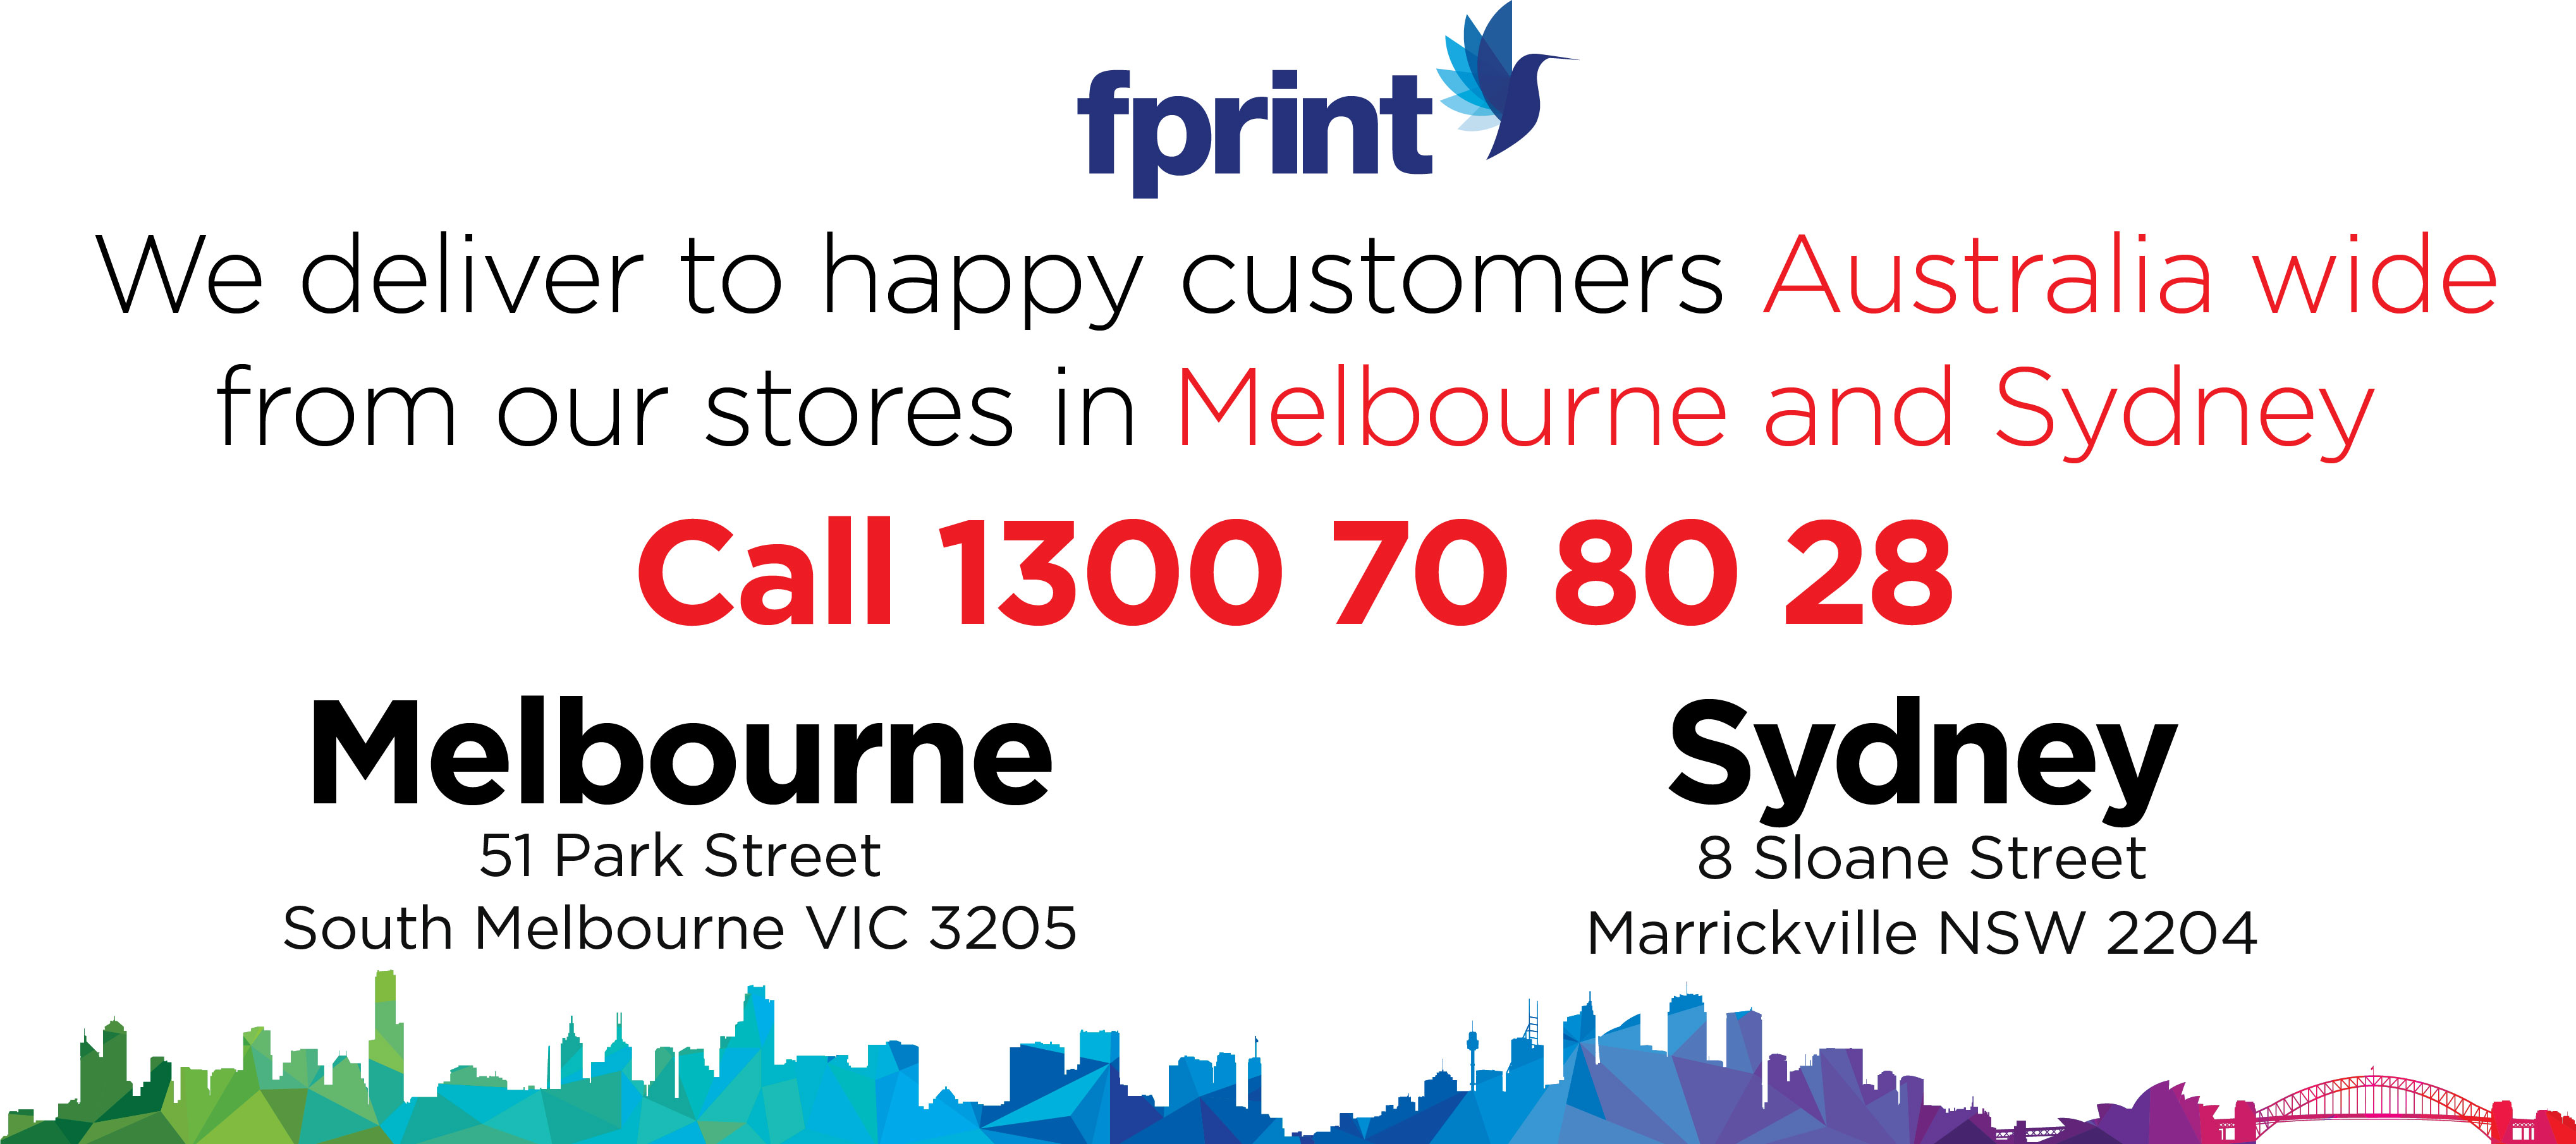 contact-page-printing-melbourne-sydney17.jpg